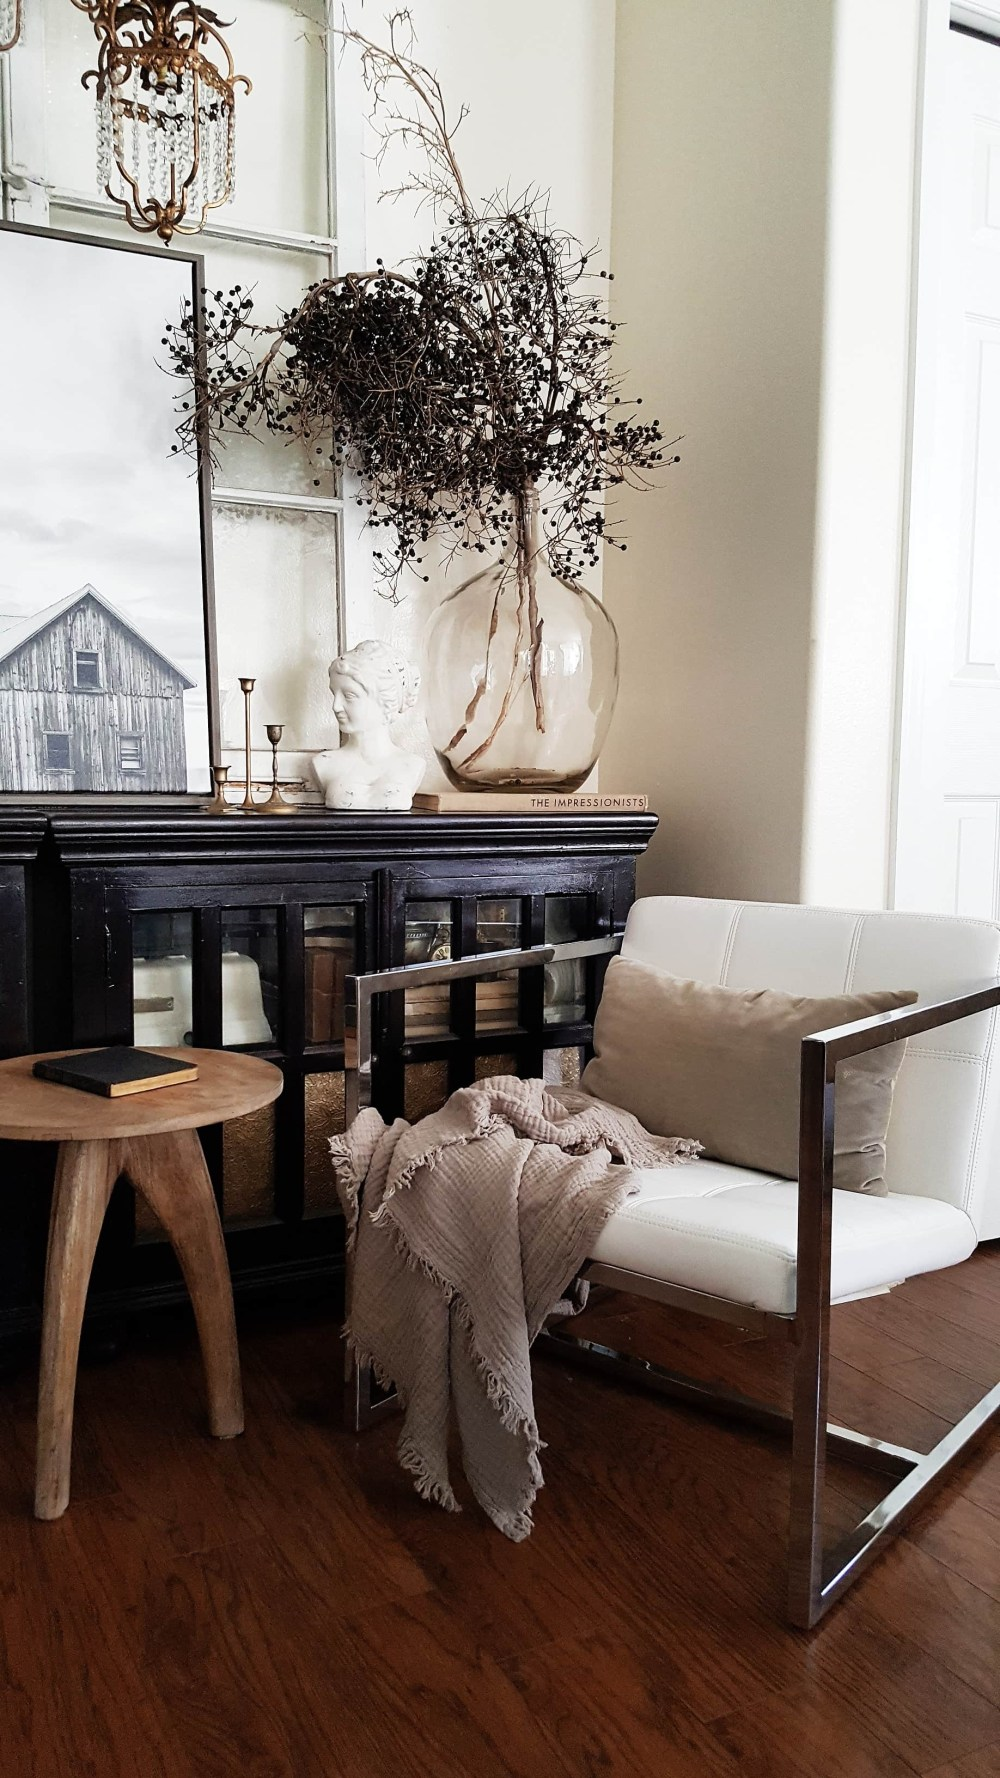 Modern Farmhouse Eclectic Industrial Decor Design Vintage Antiques Rugs Living Room Inspiration Black and White Scandinavian Decor Decorating ideas Fall Winter